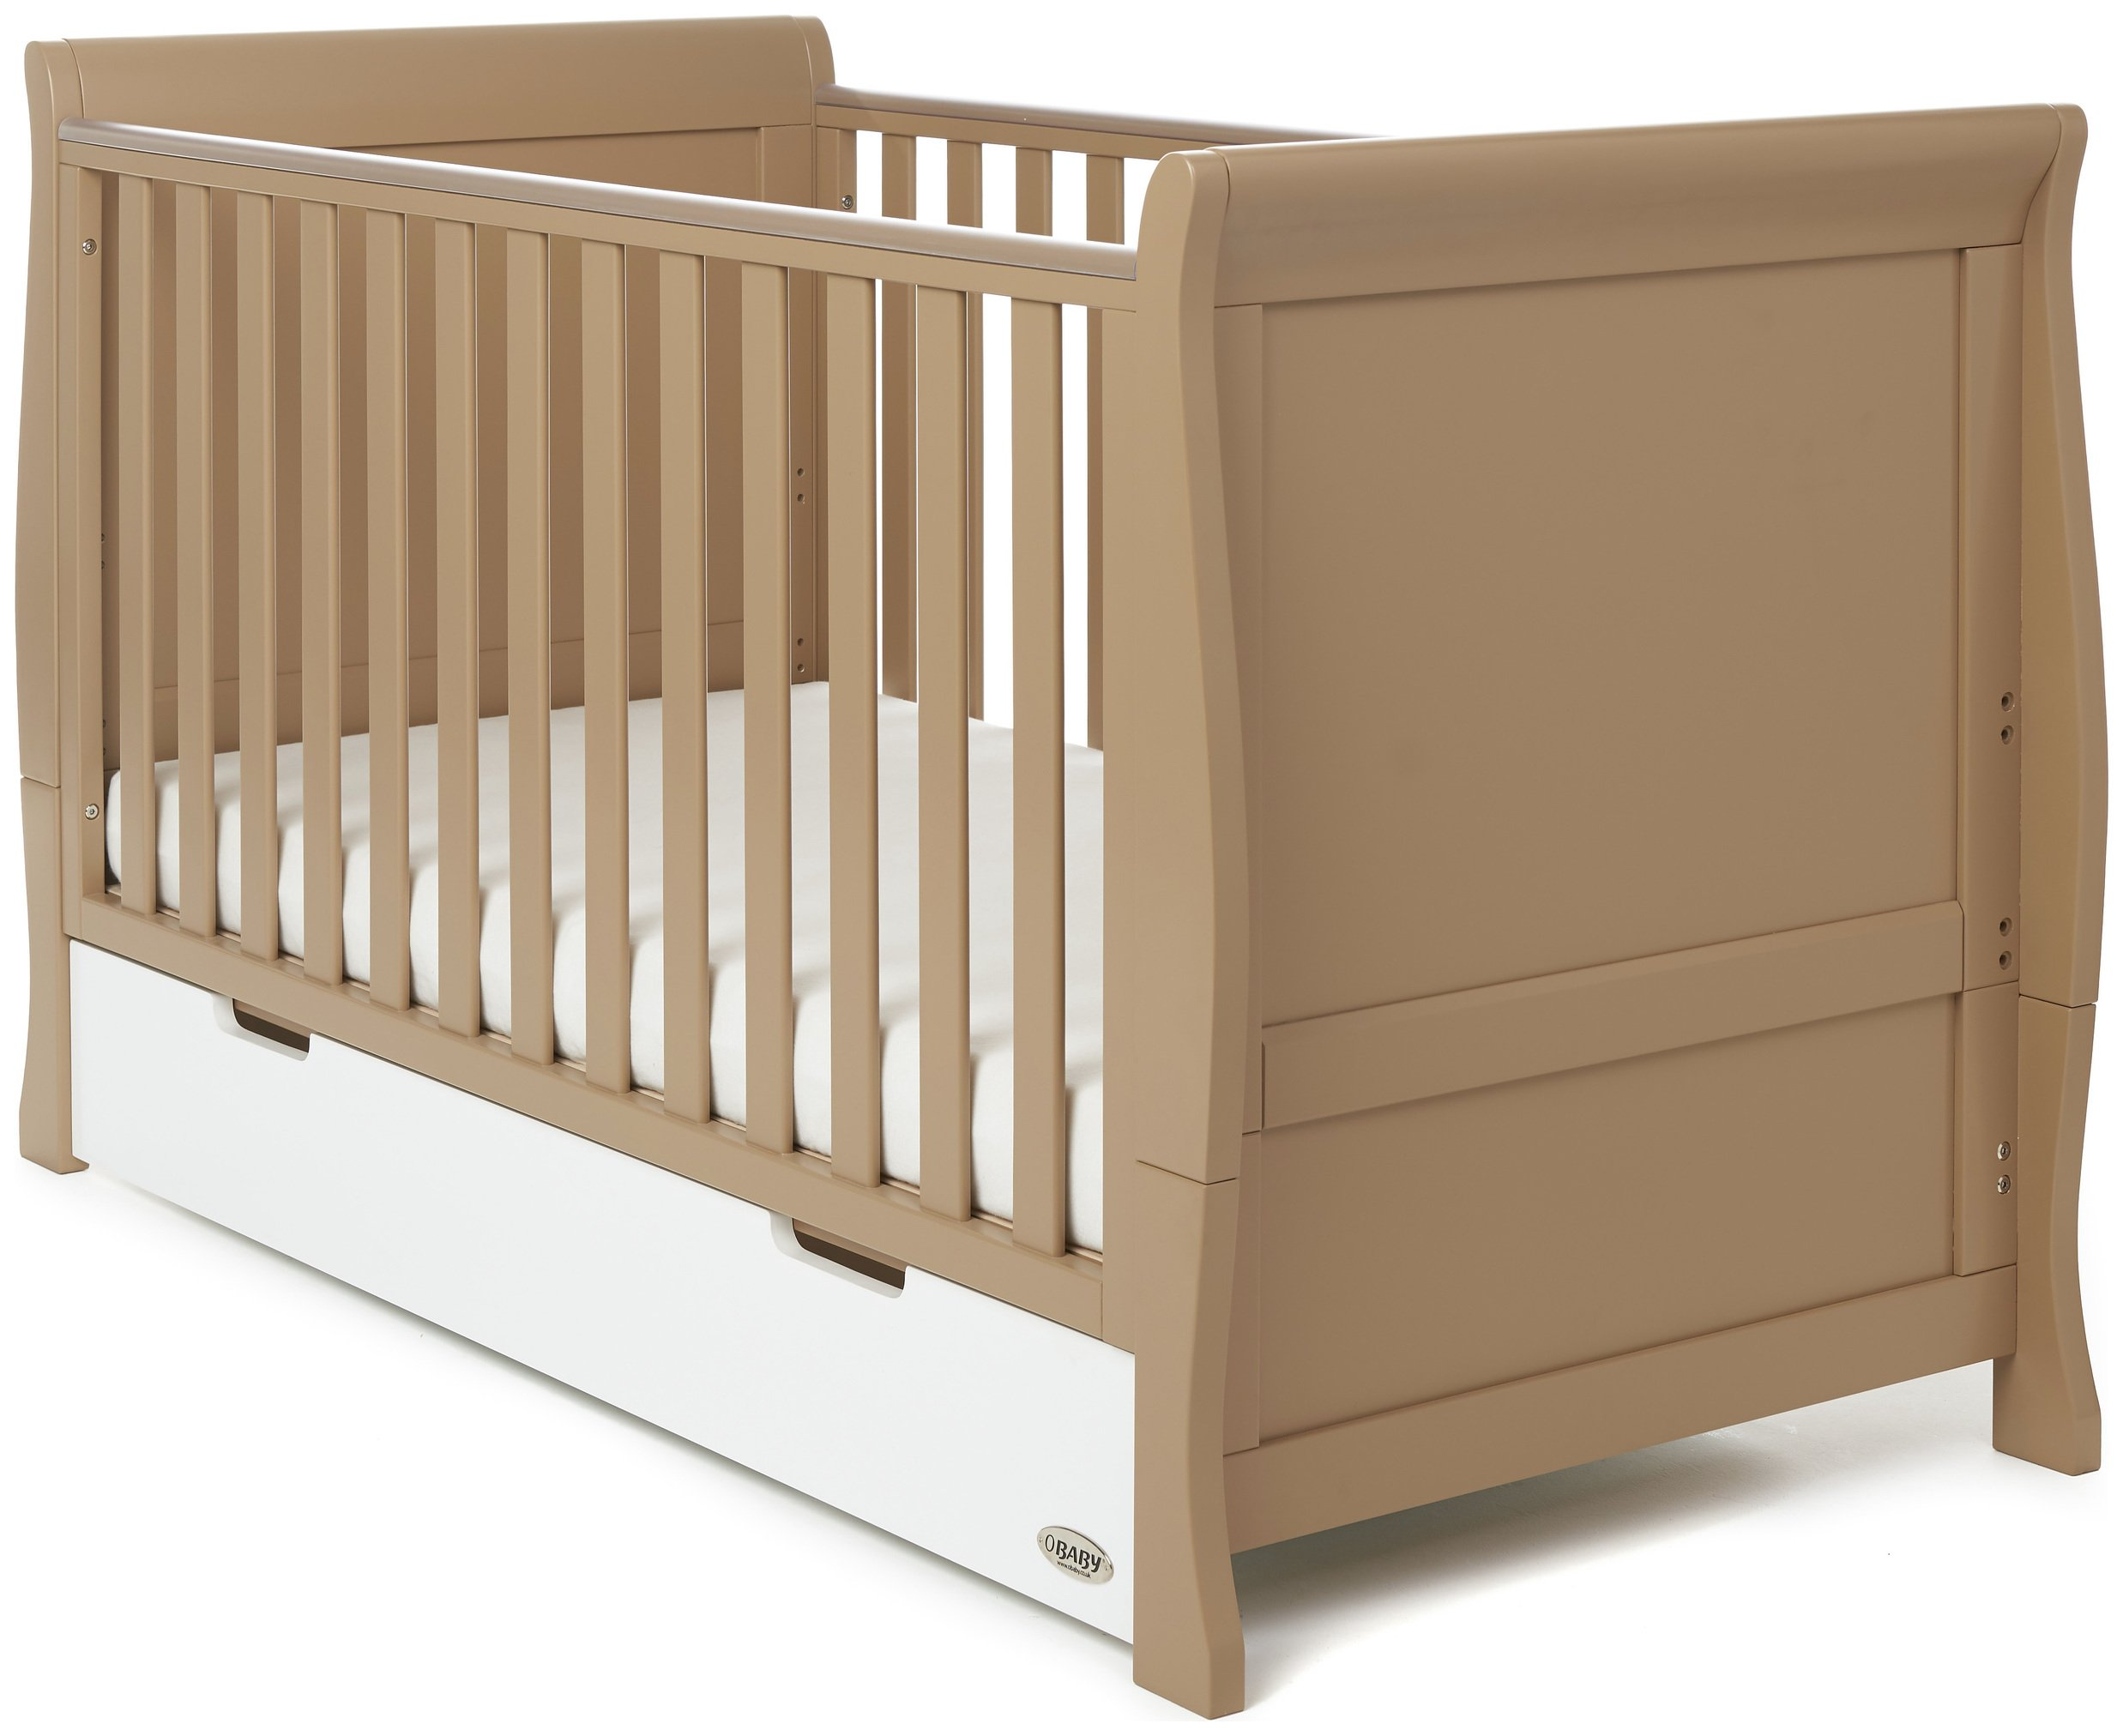 Image of Obaby Stamford Retro Cot Bed - Iced Coffee with White